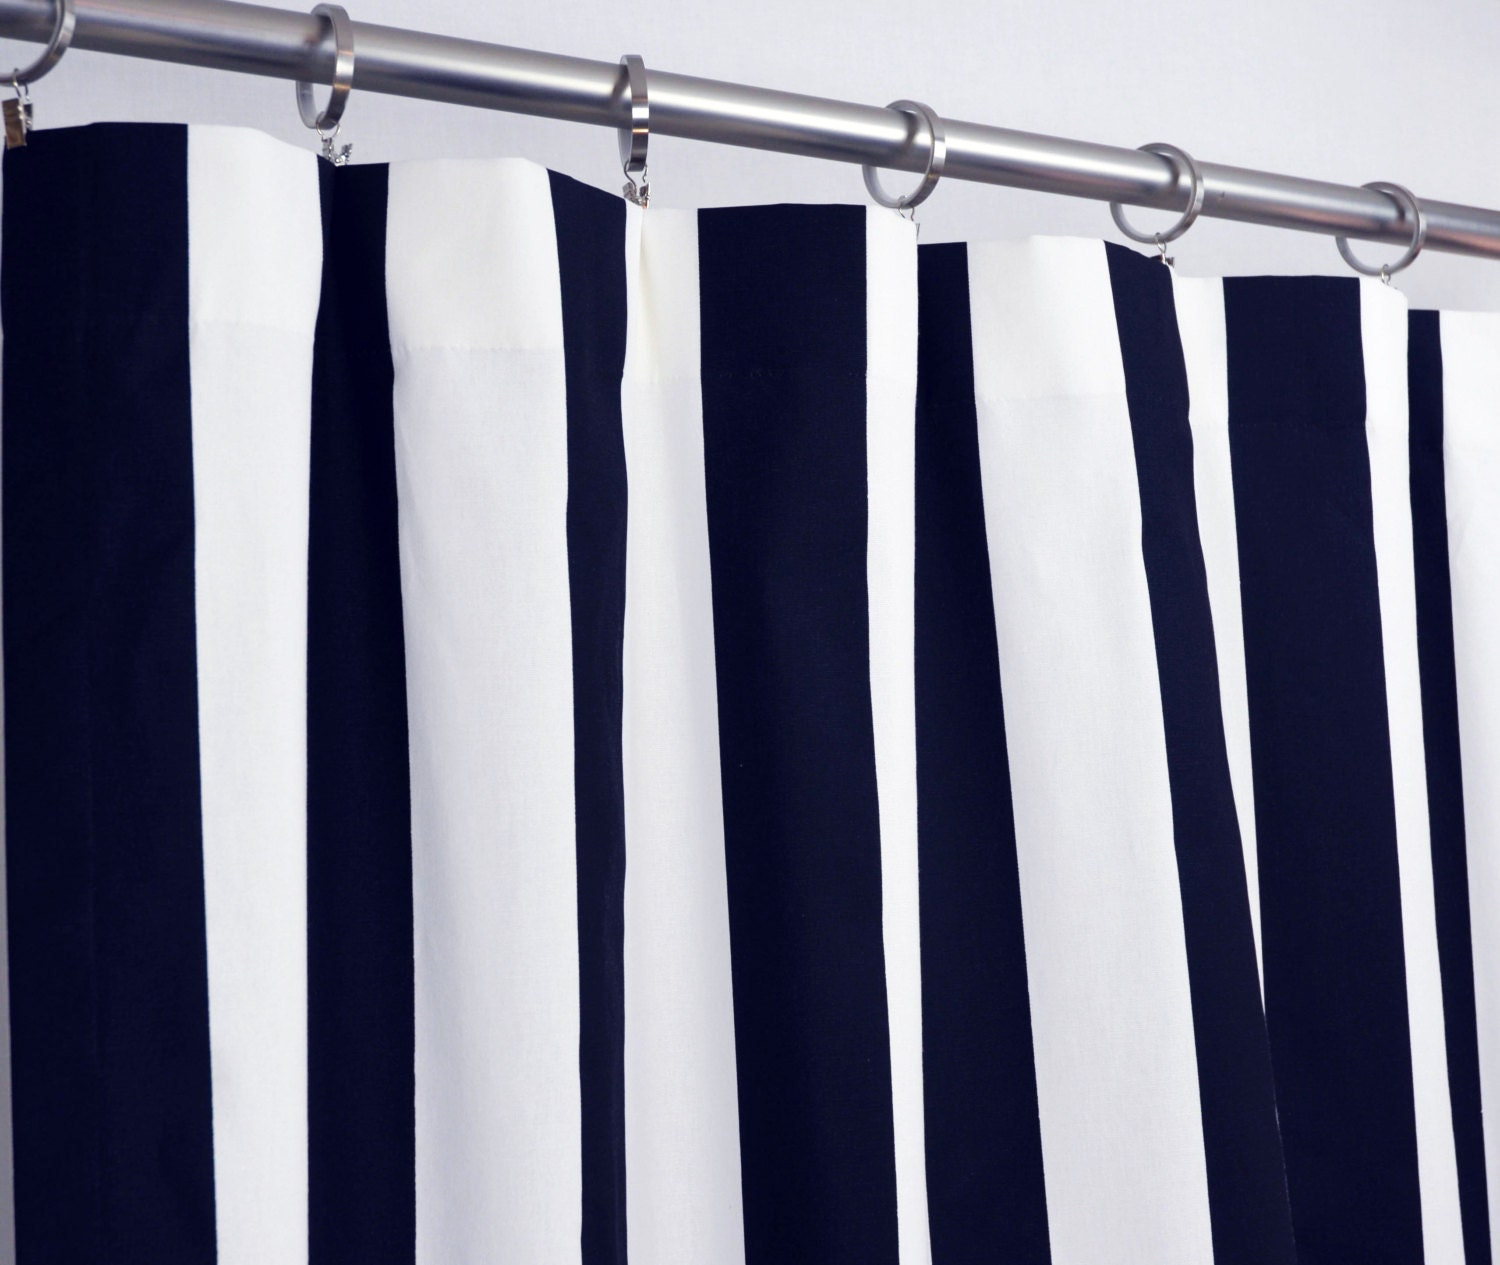 Pair of Rod Pocket Curtains in Navy Blue and White by Zeldabelle